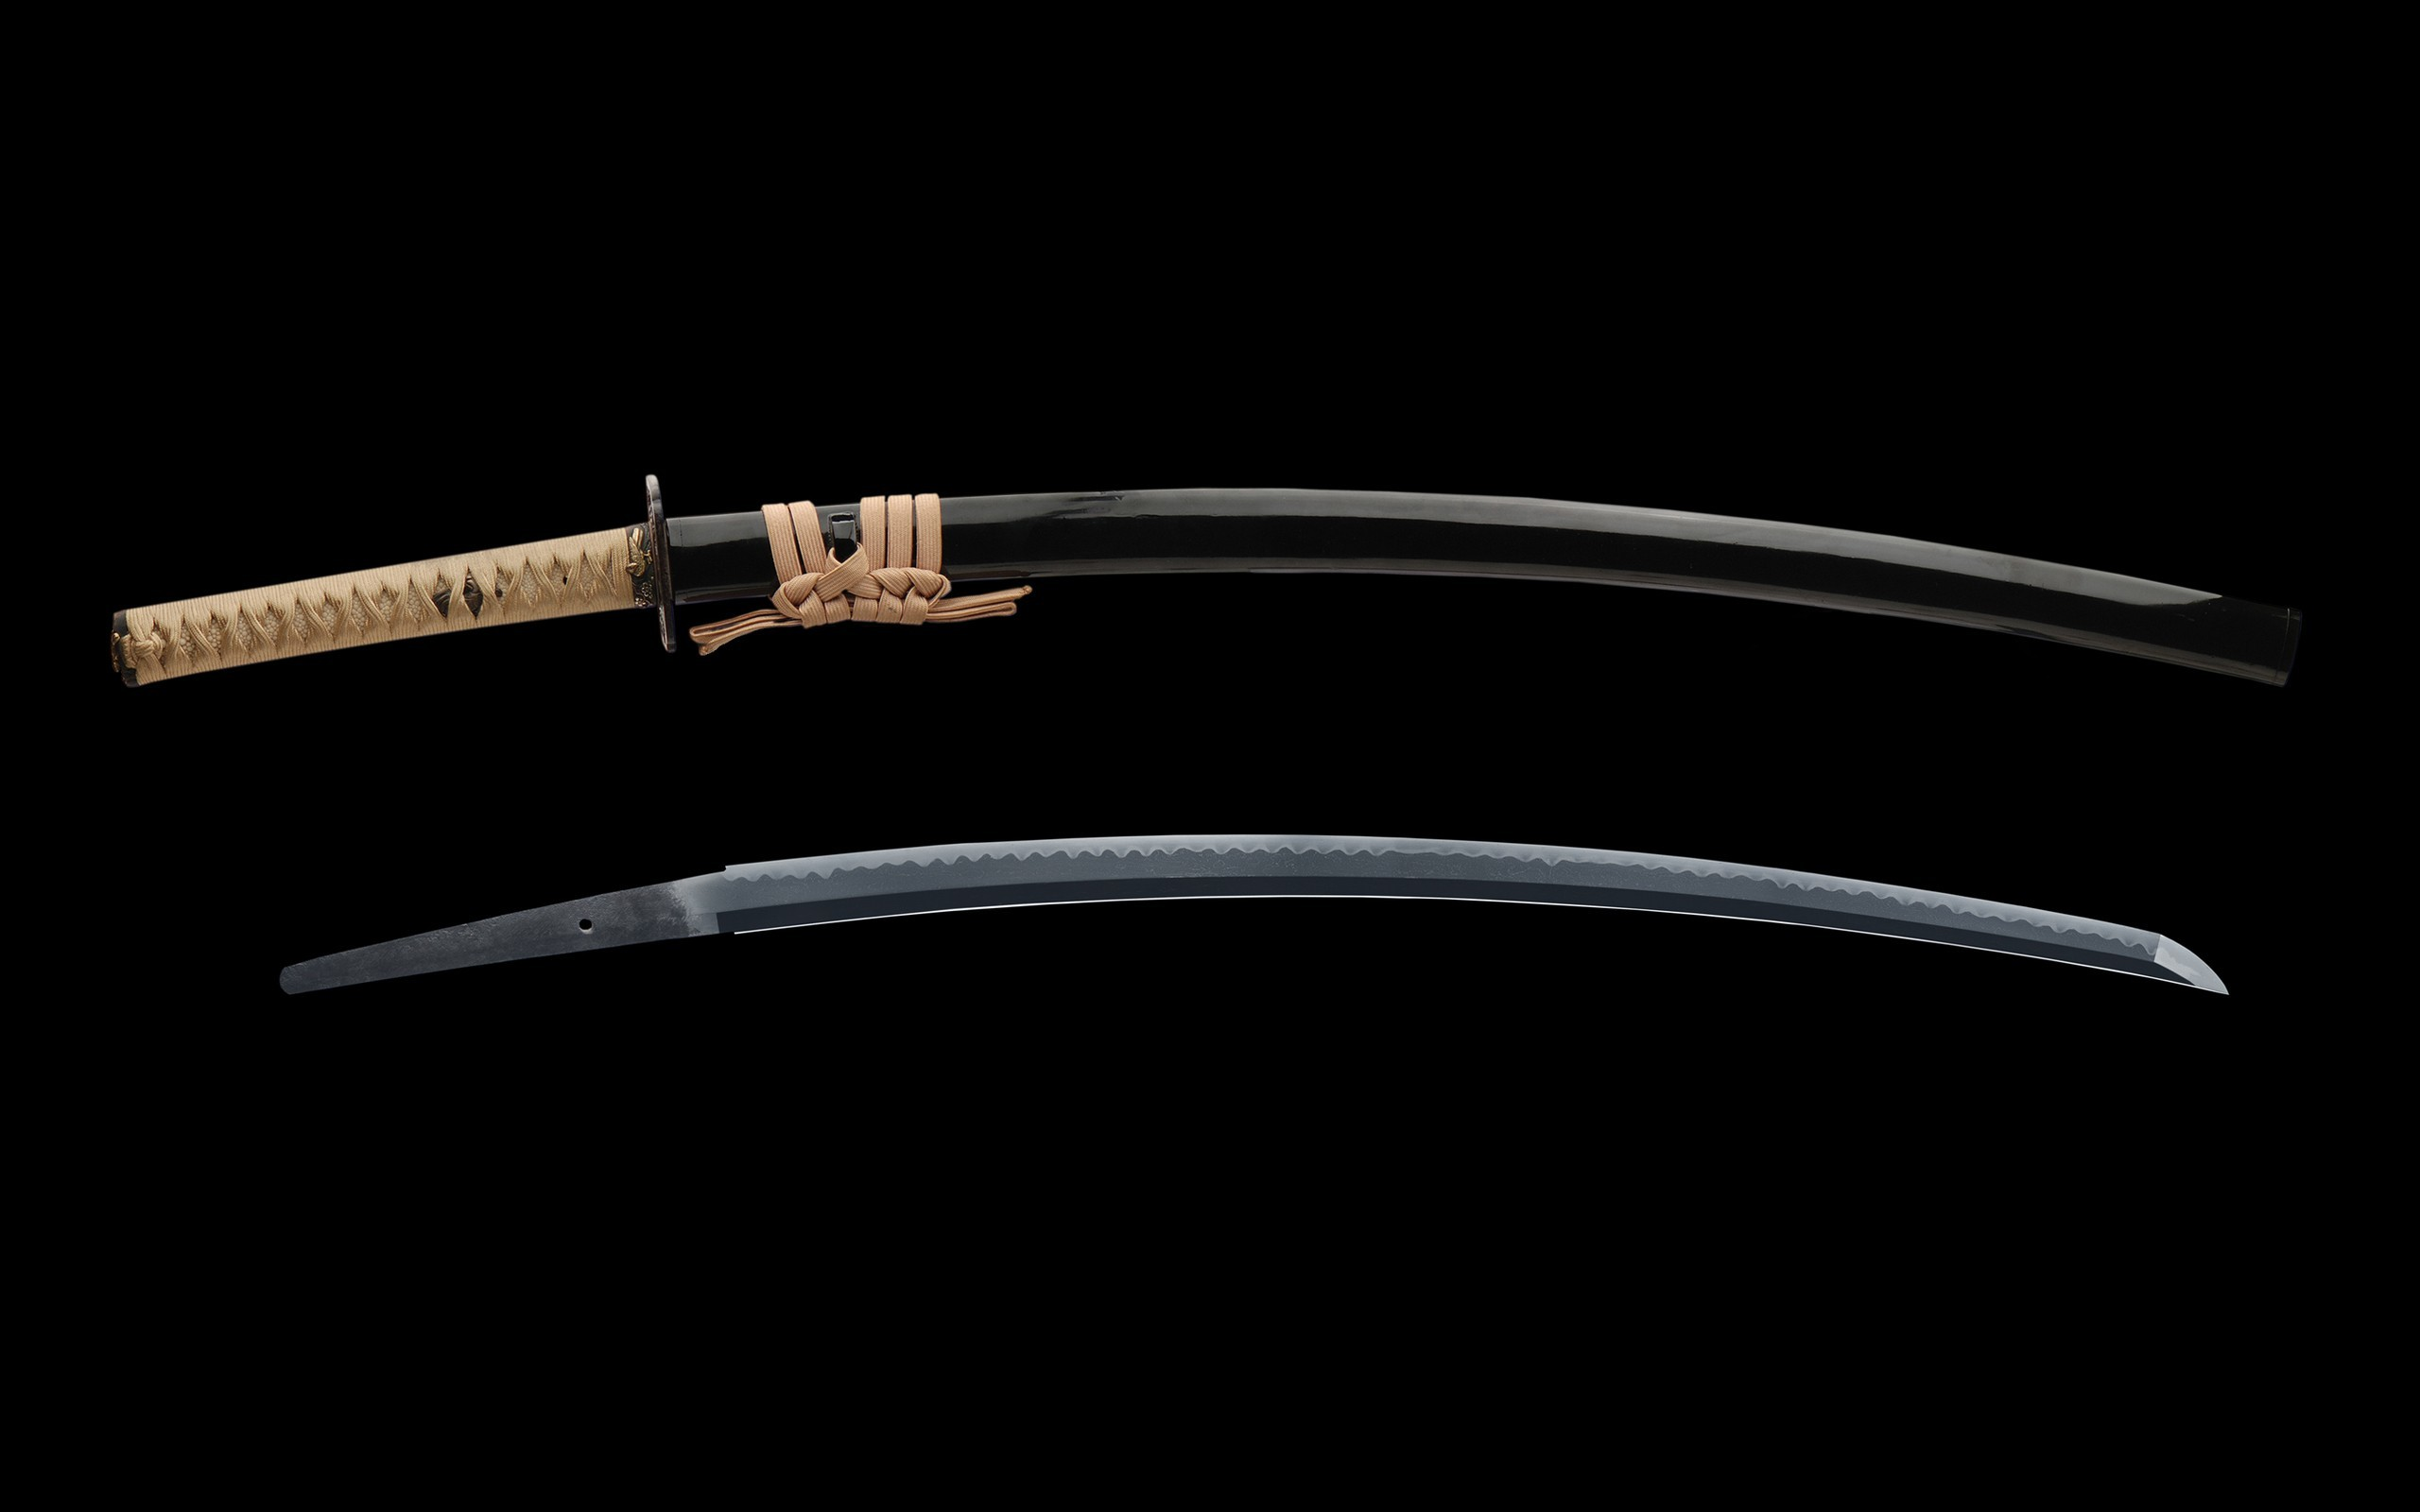 Katana weapons blade Swords HD Wallpaper